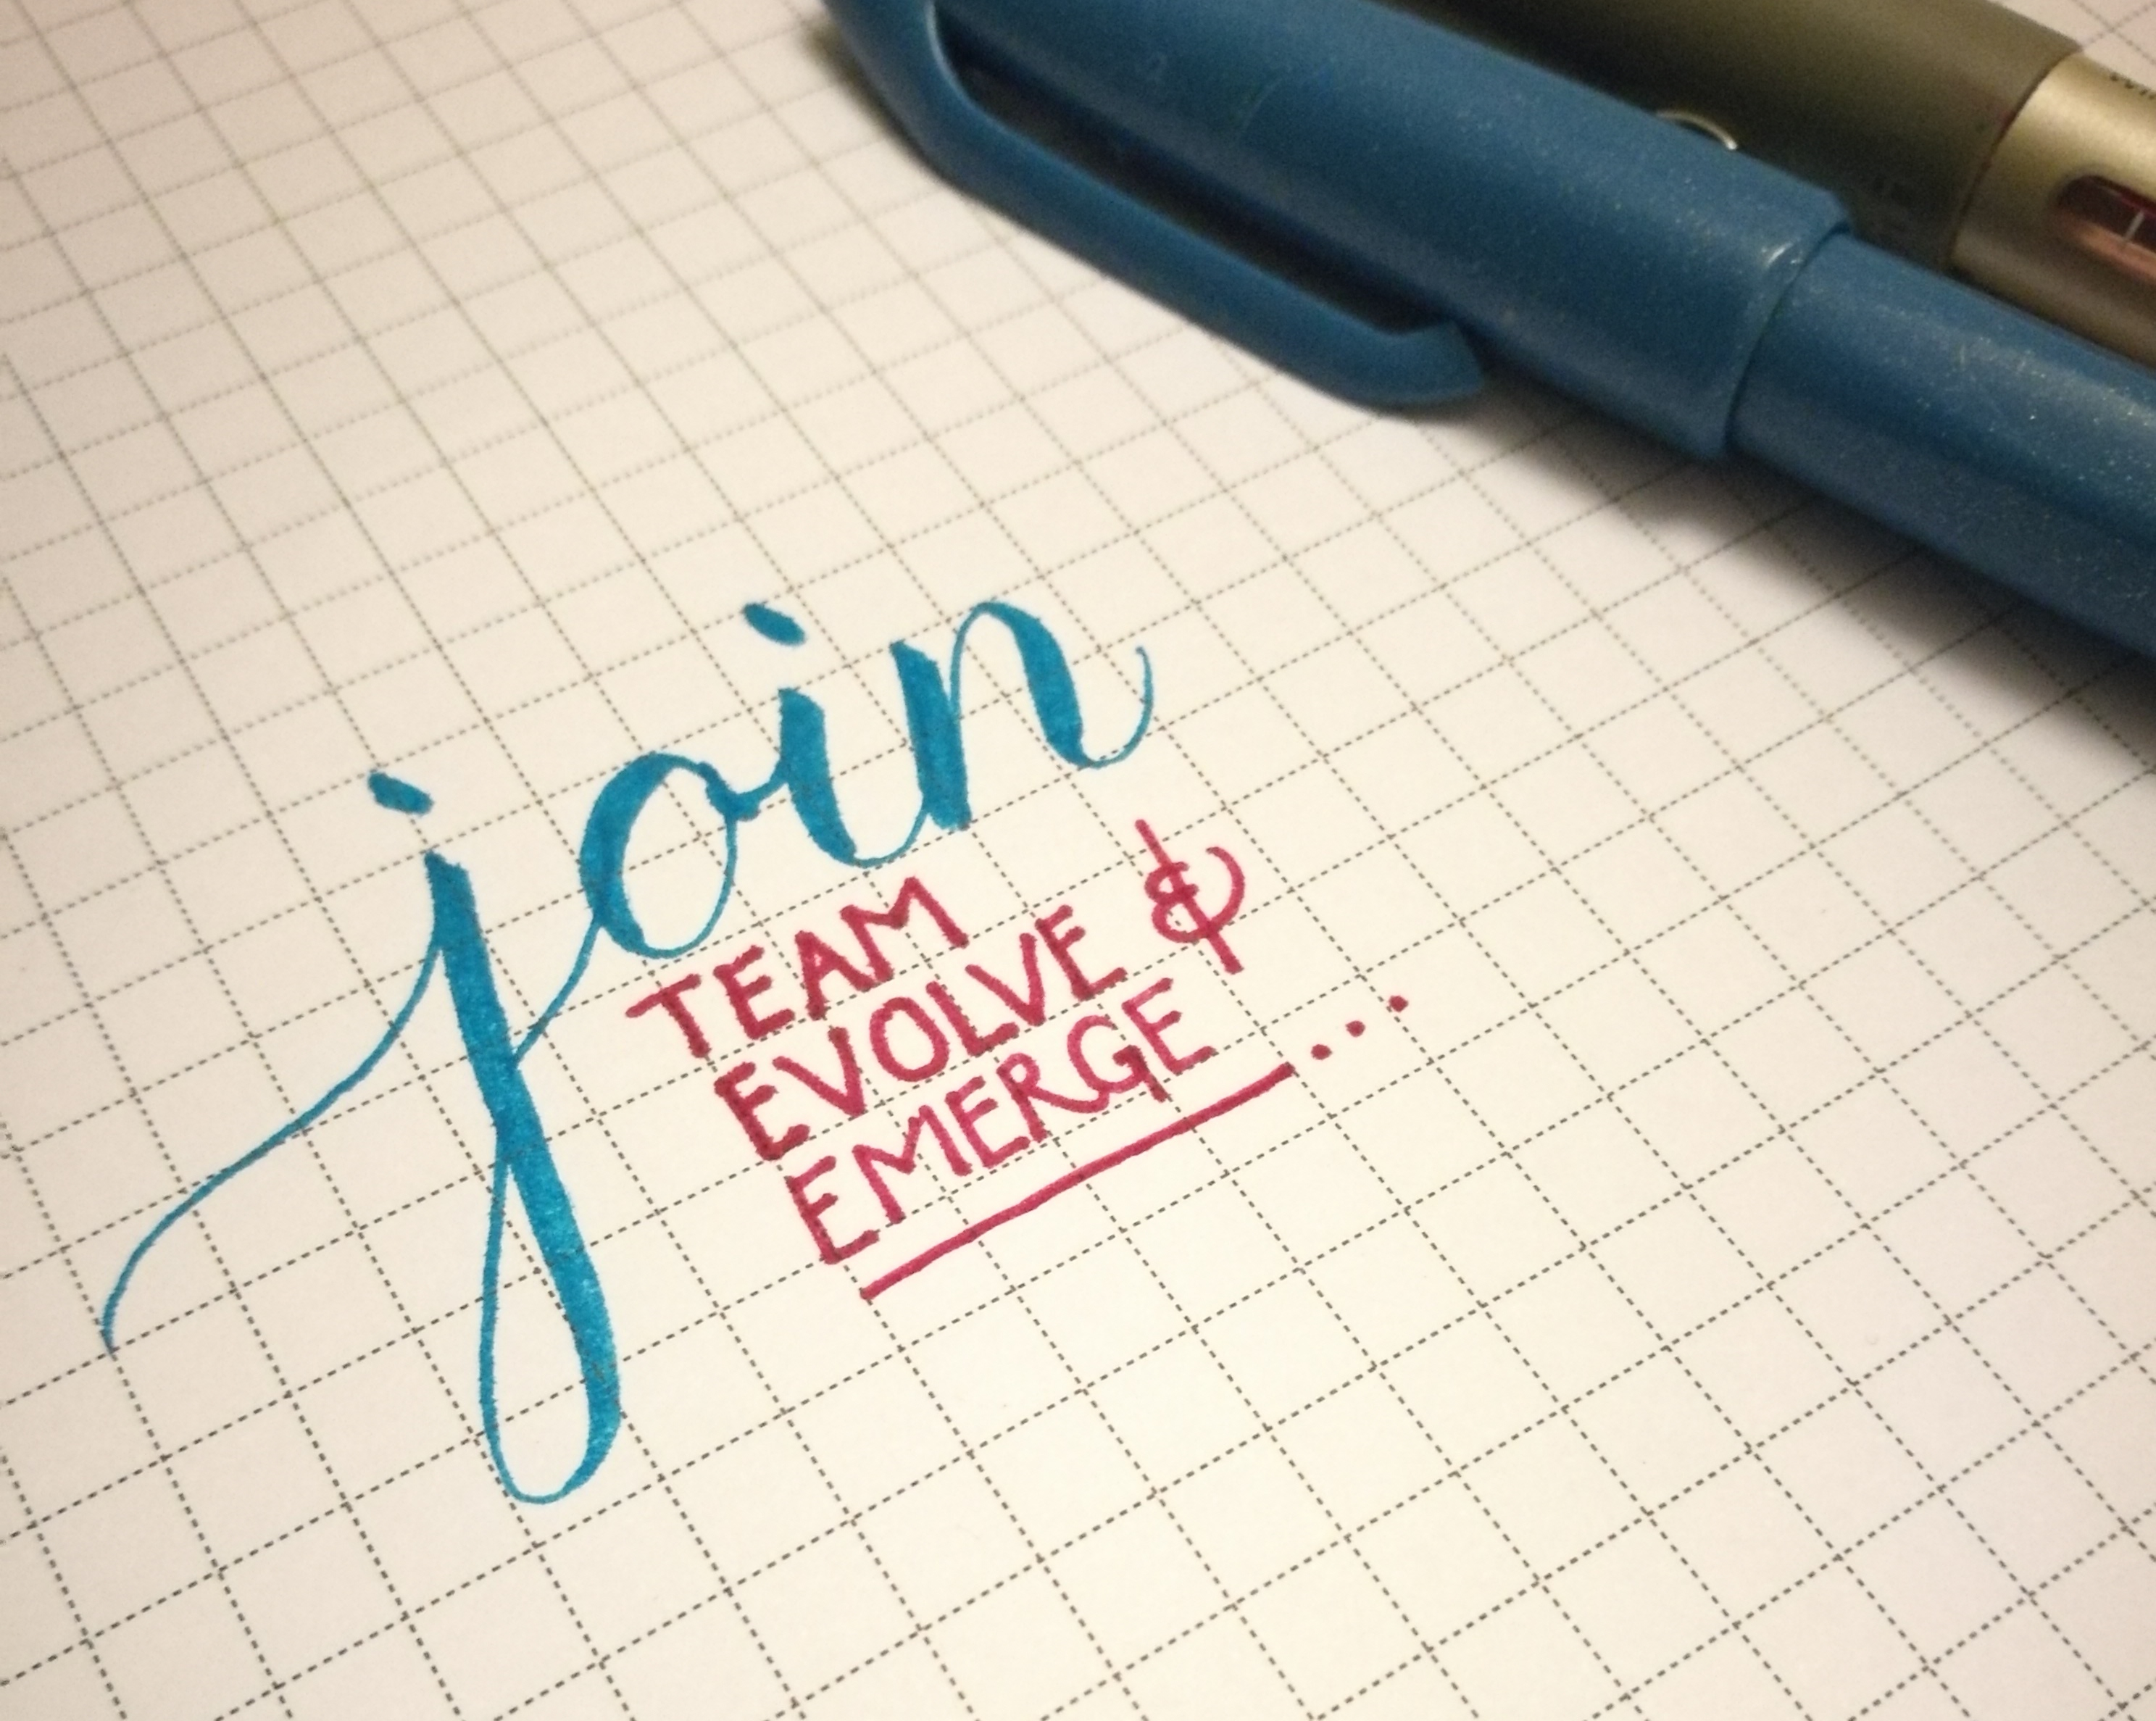 Join Team Evolve & Emerge